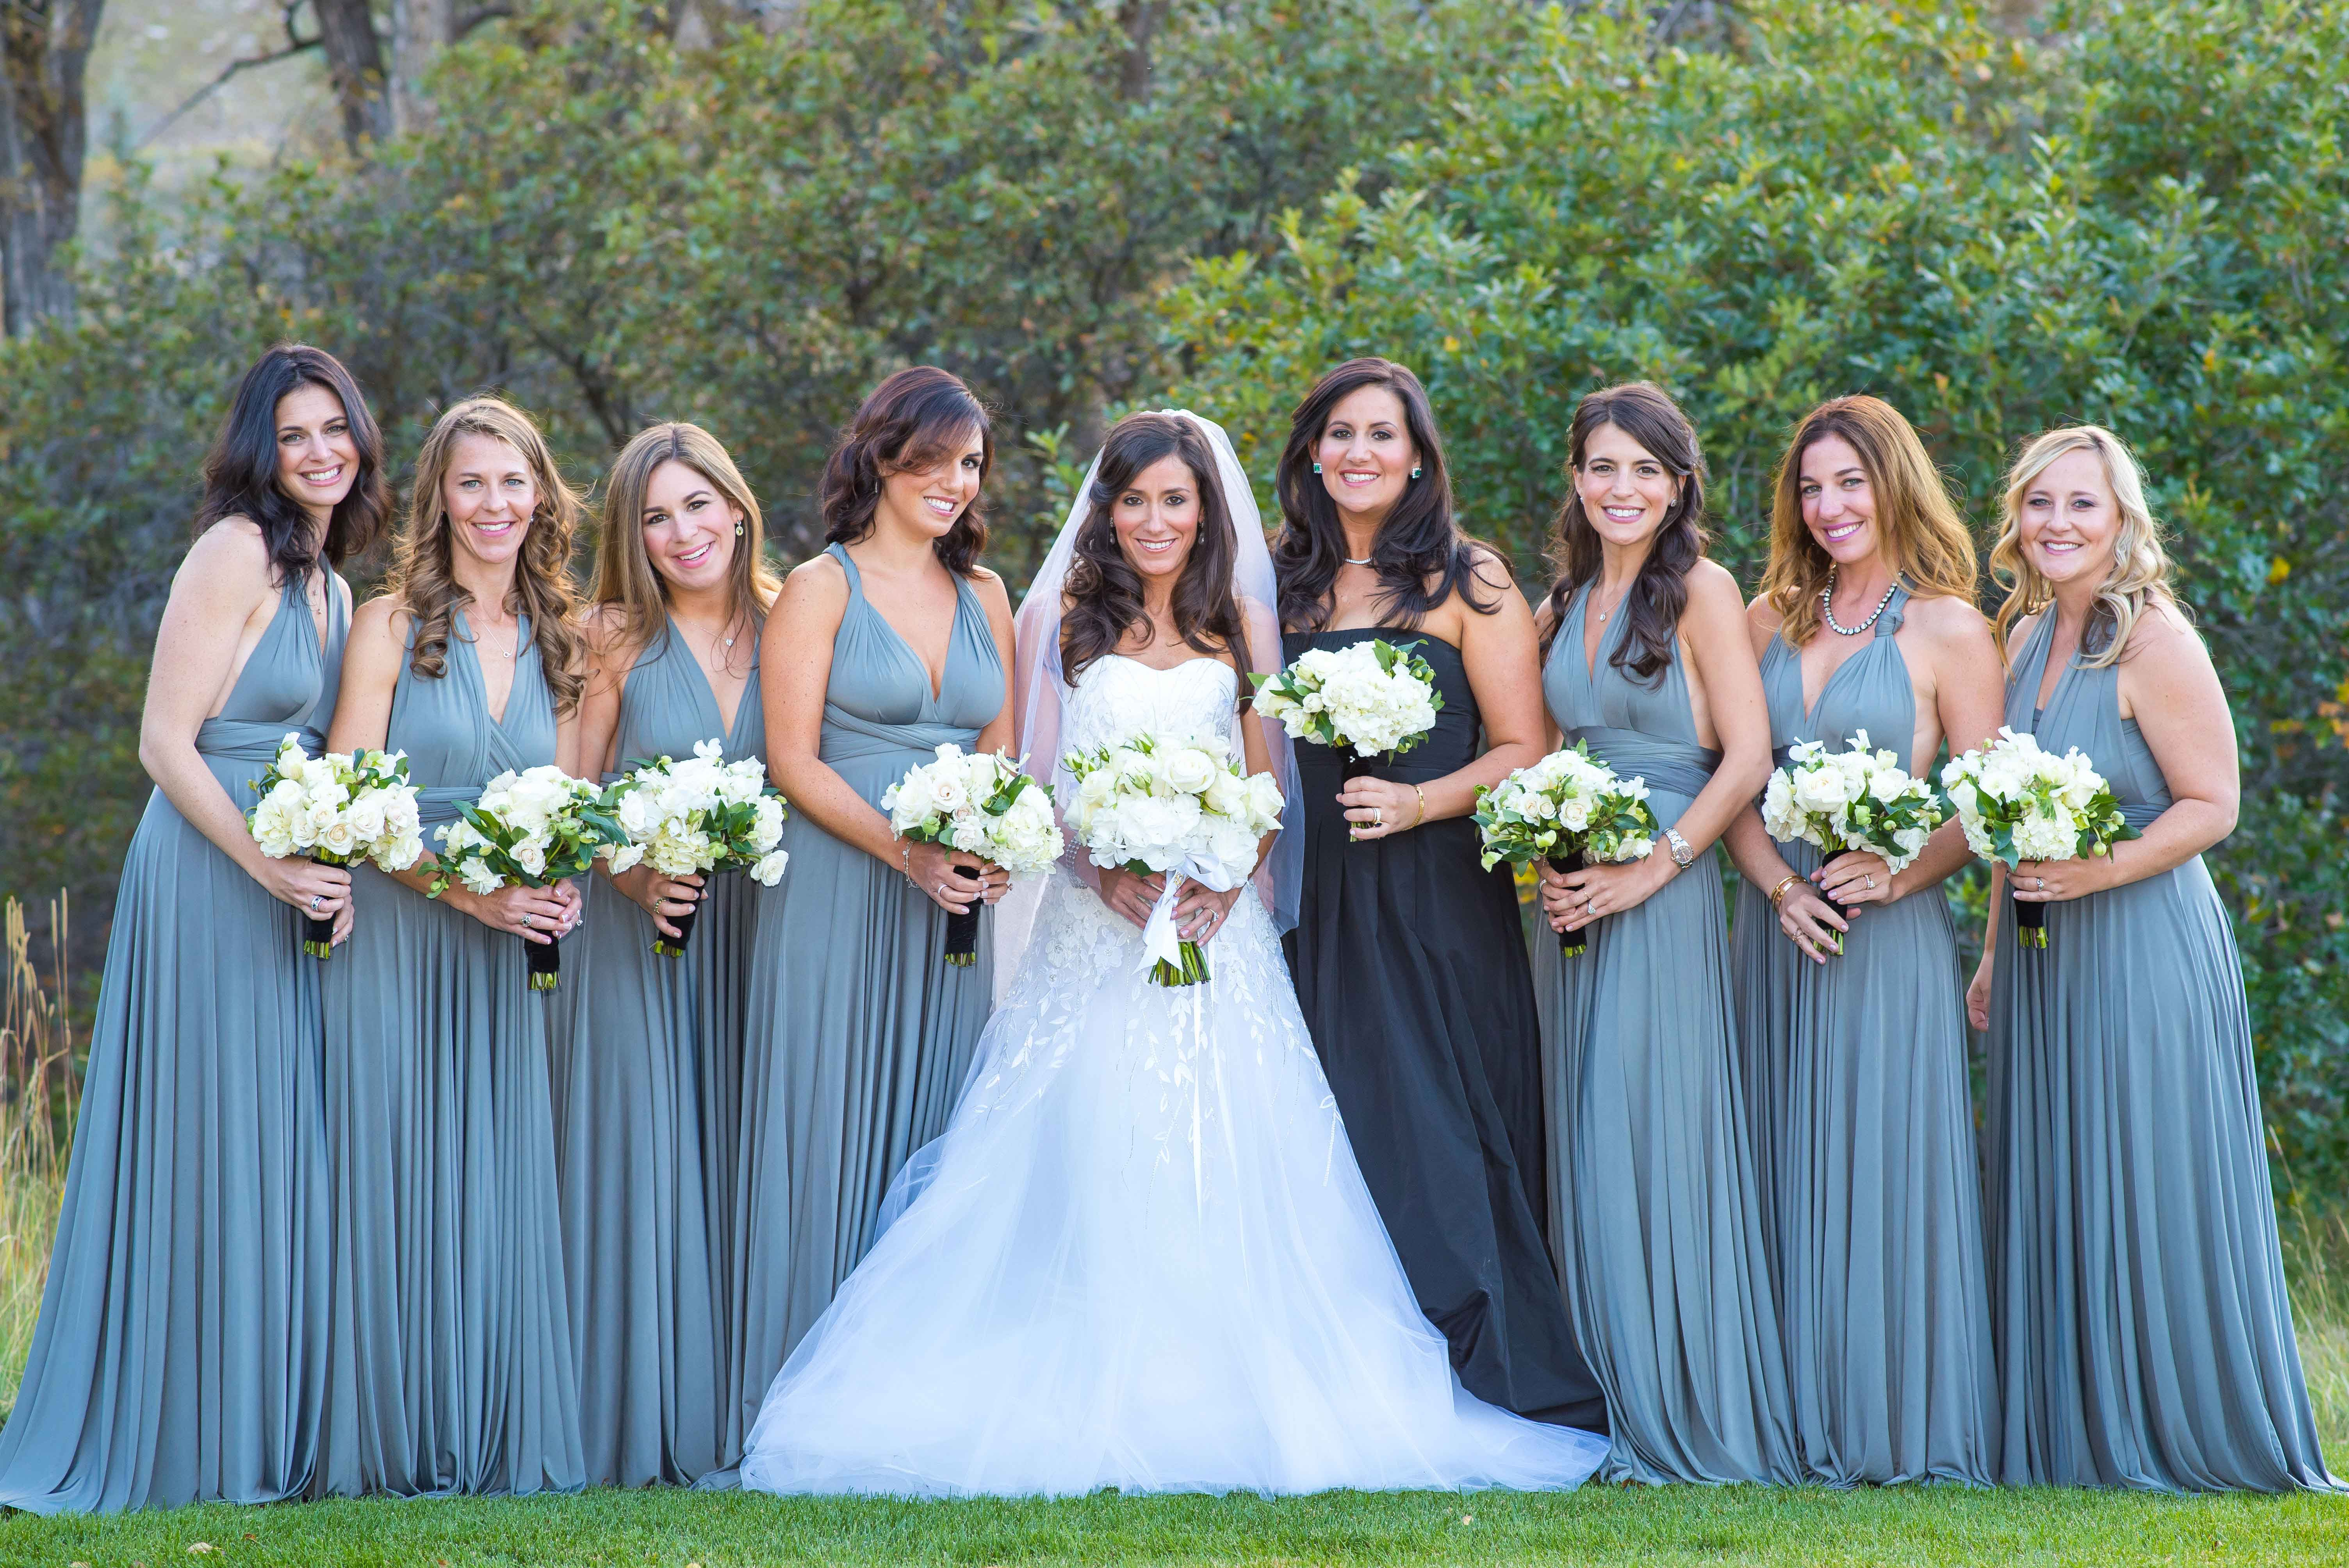 6 Different Bridesmaid Dress Concepts to Make Your Maid of Honor ...